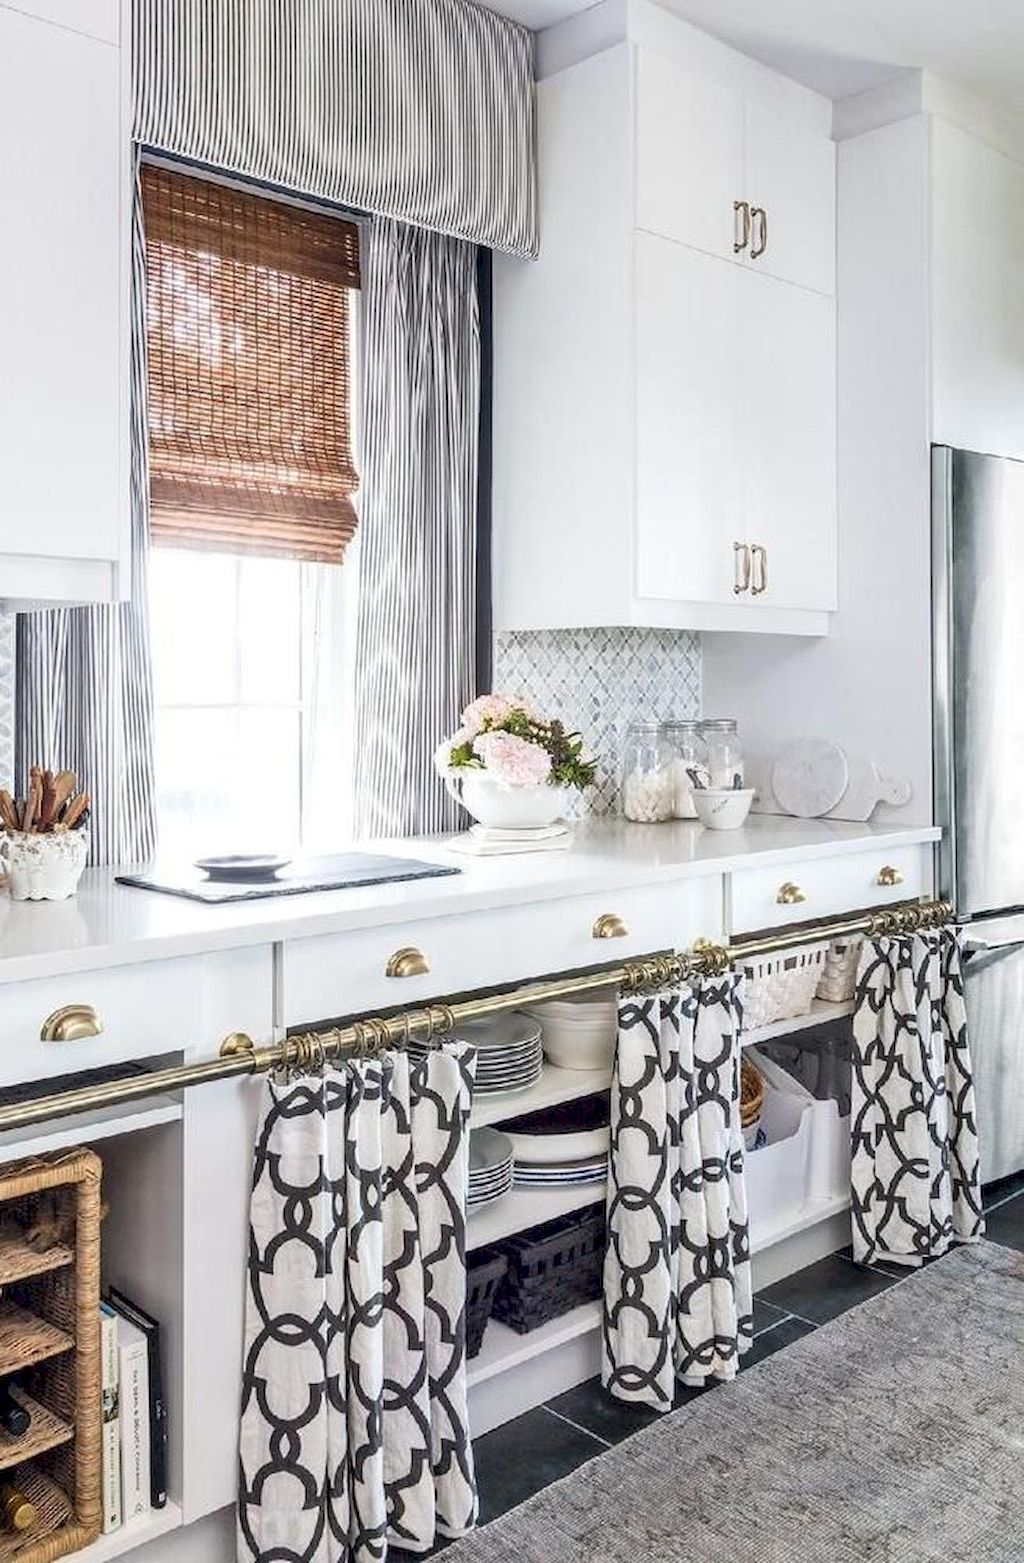 Sumptuous Superior Kitchen Curtain Concepts You Have to Attempt ...